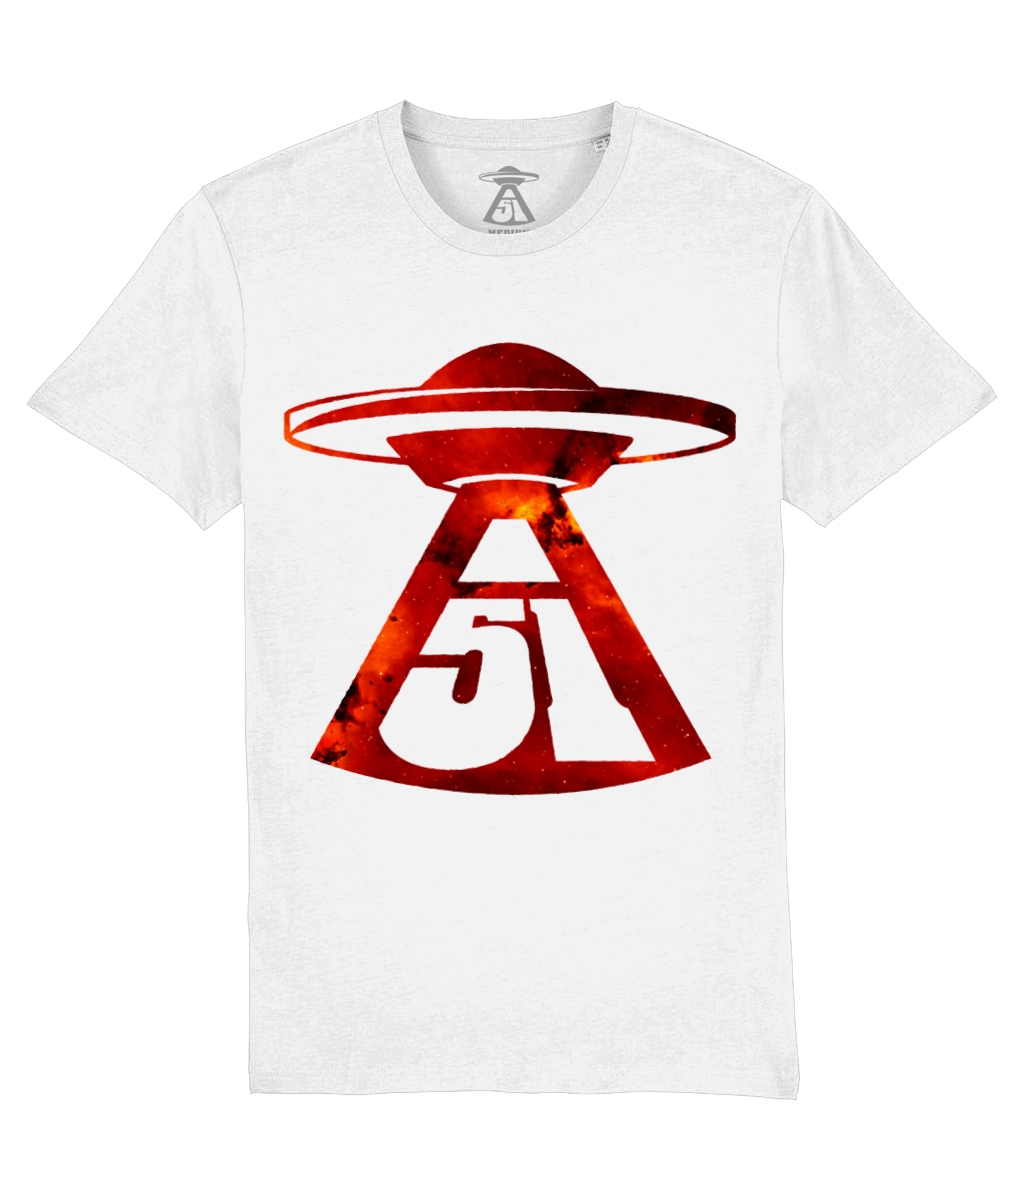 First Contact - T-Shirt For Men - Abduction 51 Extraterrestrial Streetwear | UFO & Alien Inspired